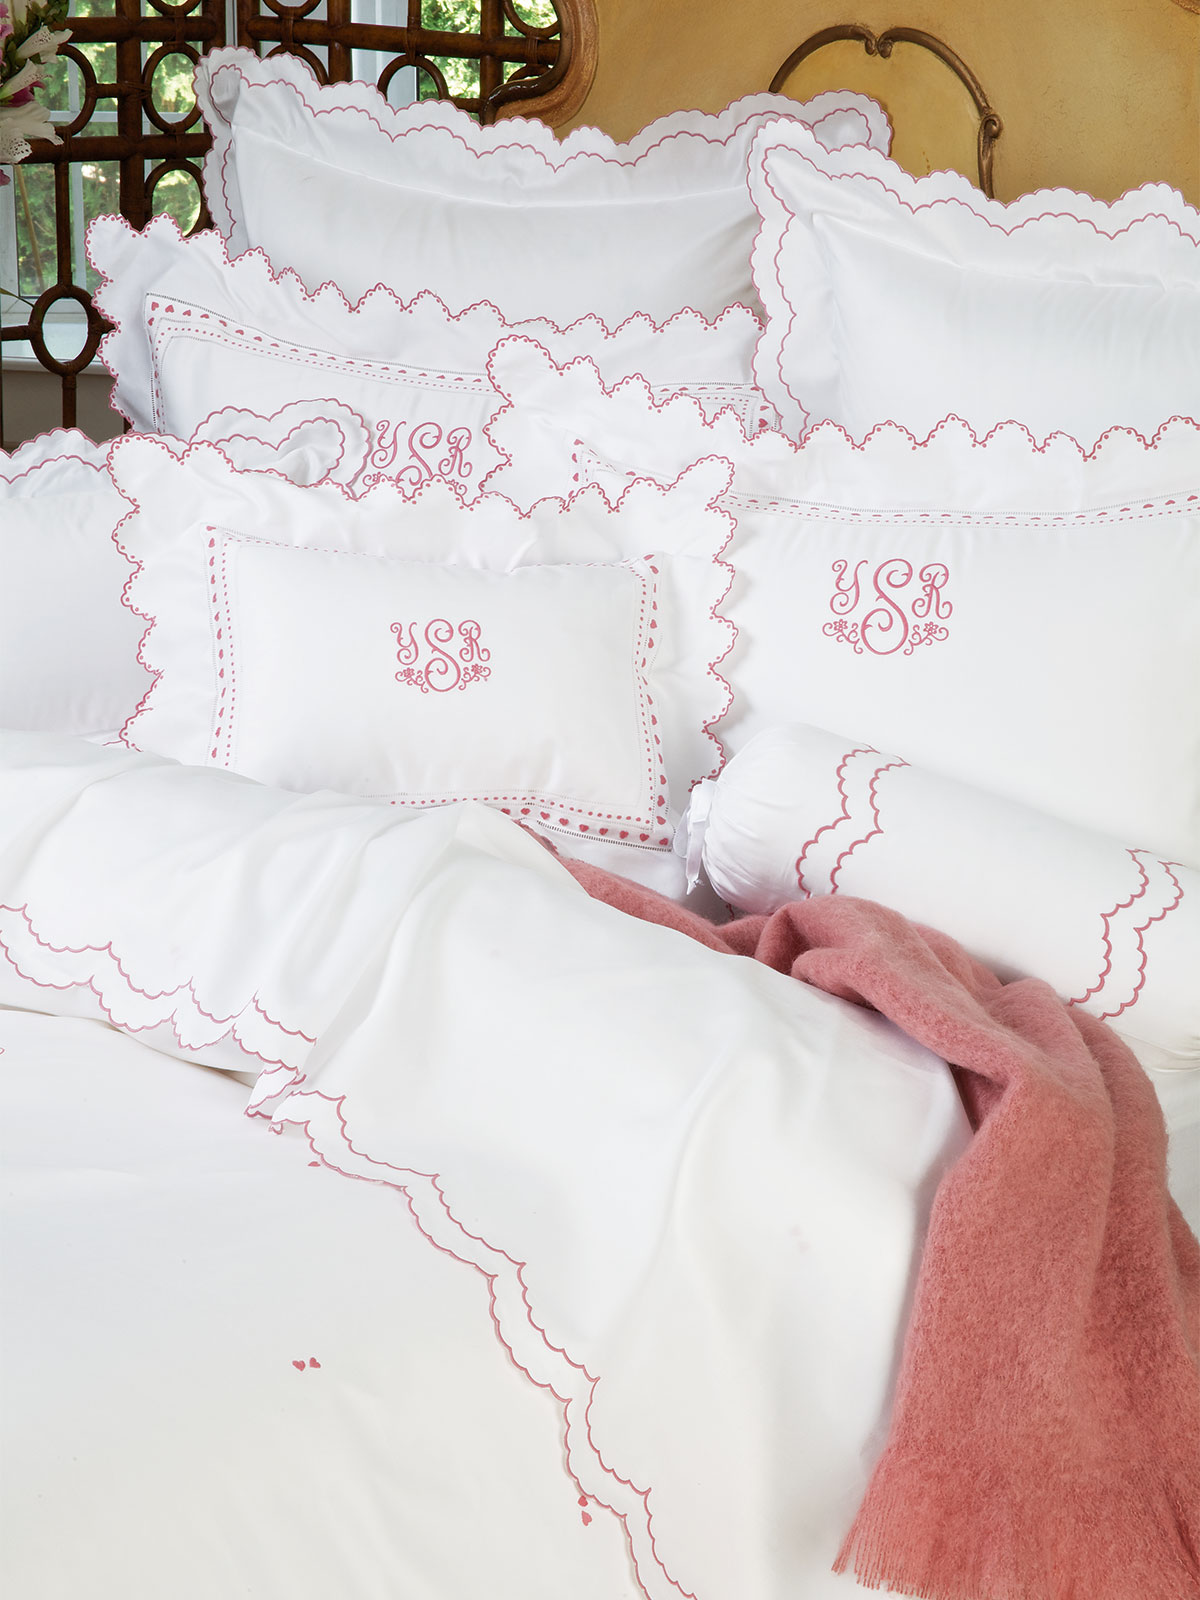 rqvxcmwmyyhp mound layer duvet covers scallop trading bedding international textile page set home as ltd group shanghai cover urban product co